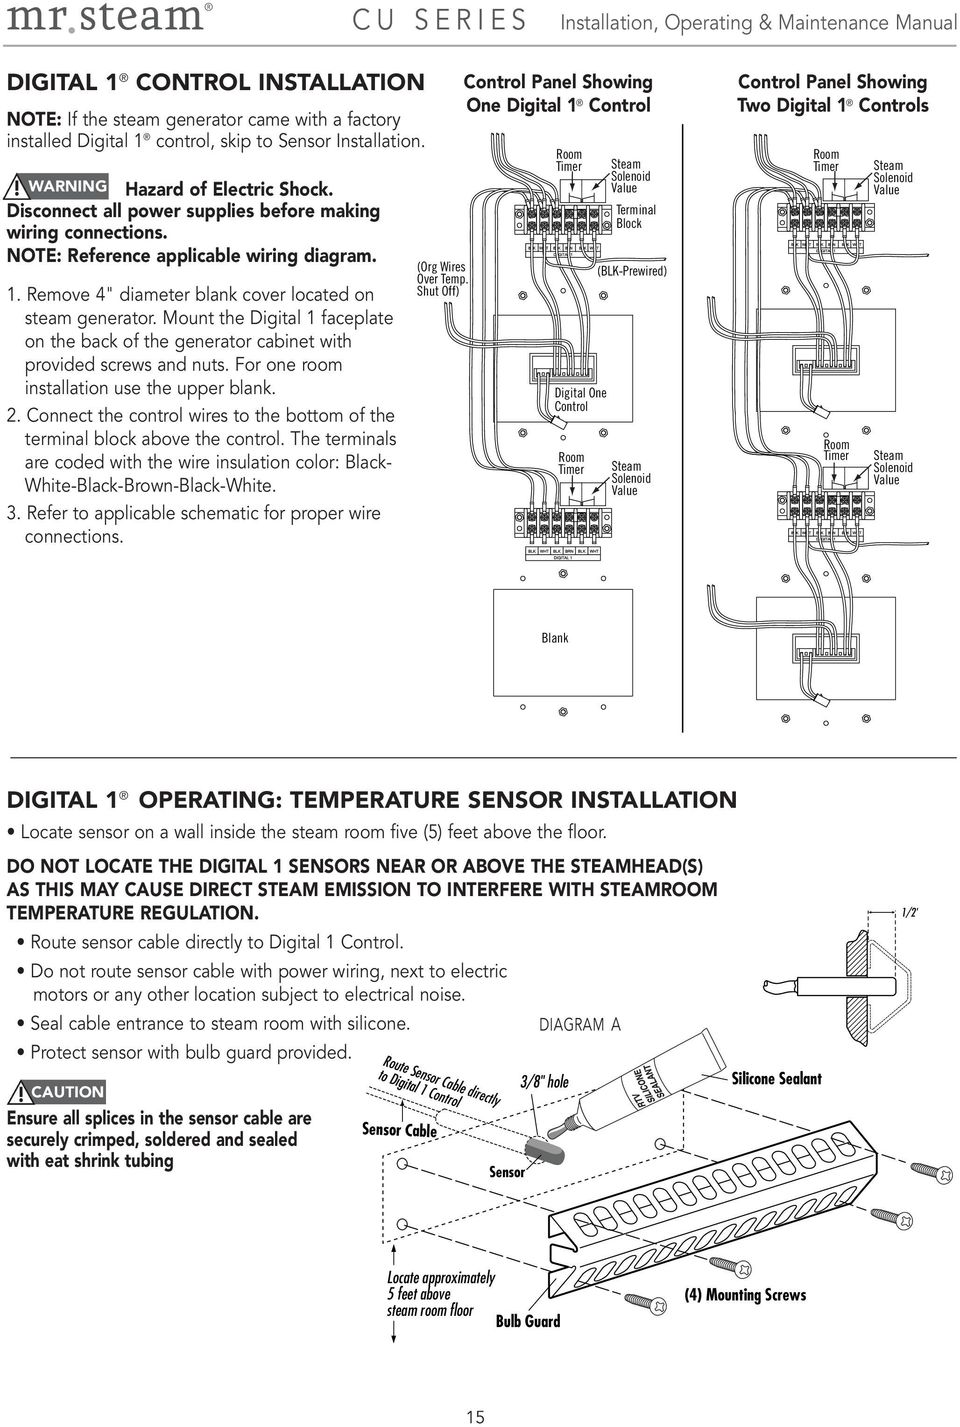 Mr Steam Wiring Diagram Detailed Schematics 85483 01 Hunter Installation Operation Maintenance Manual Feel Good Little Giant Mount The